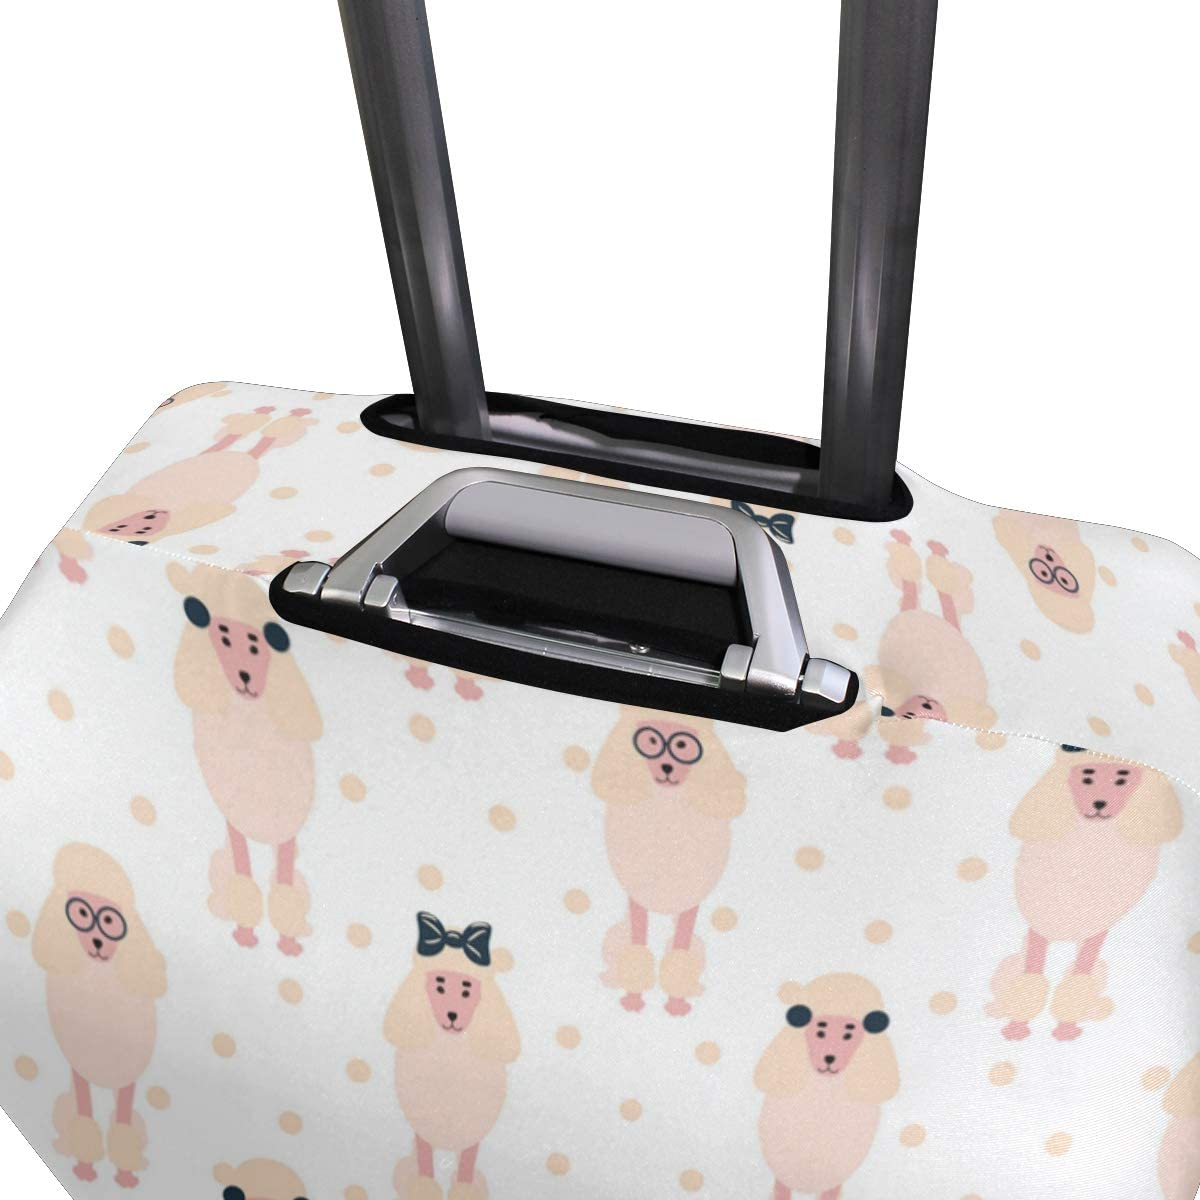 Dog Costumes Coat Traveler Lightweight Rotating Luggage Protector Case Can Carry With You Can Expand Travel Bag Trolley Rolling Luggage Protector Case